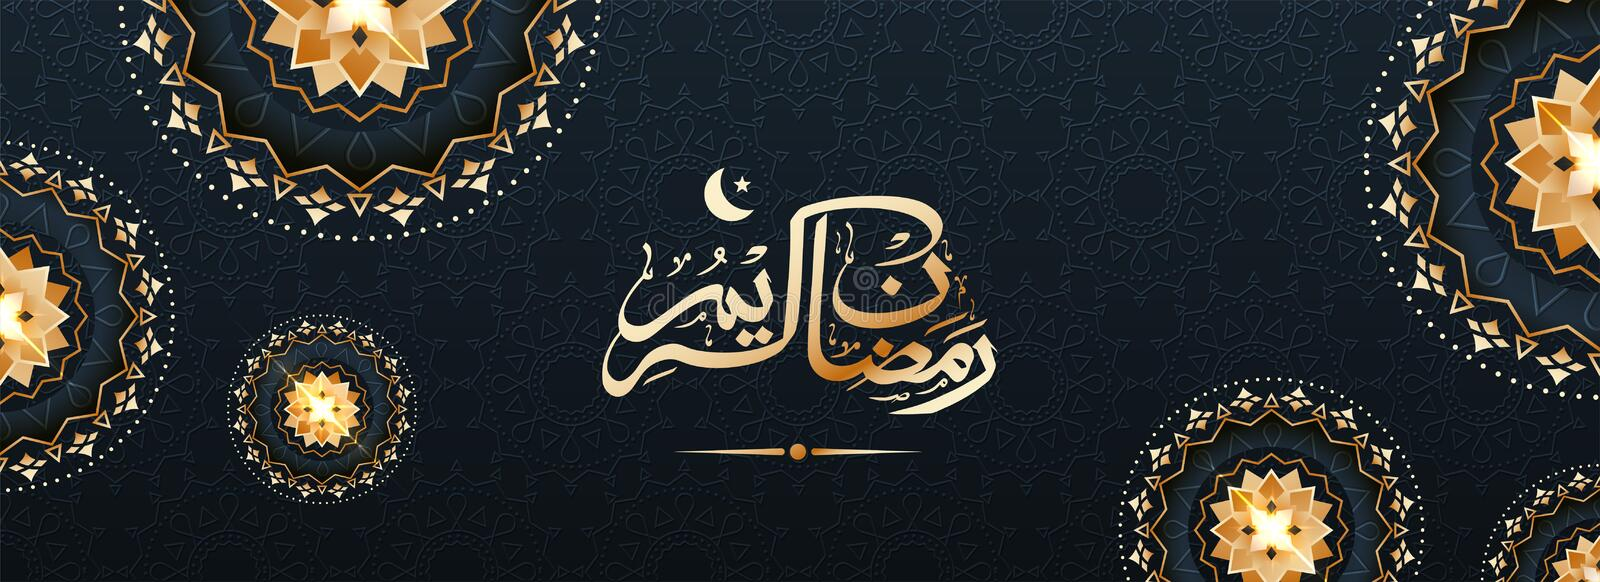 Web header or banner design with floral pattern and stylish Arabic calligraphy text of Ramadan Kareem. stock illustration